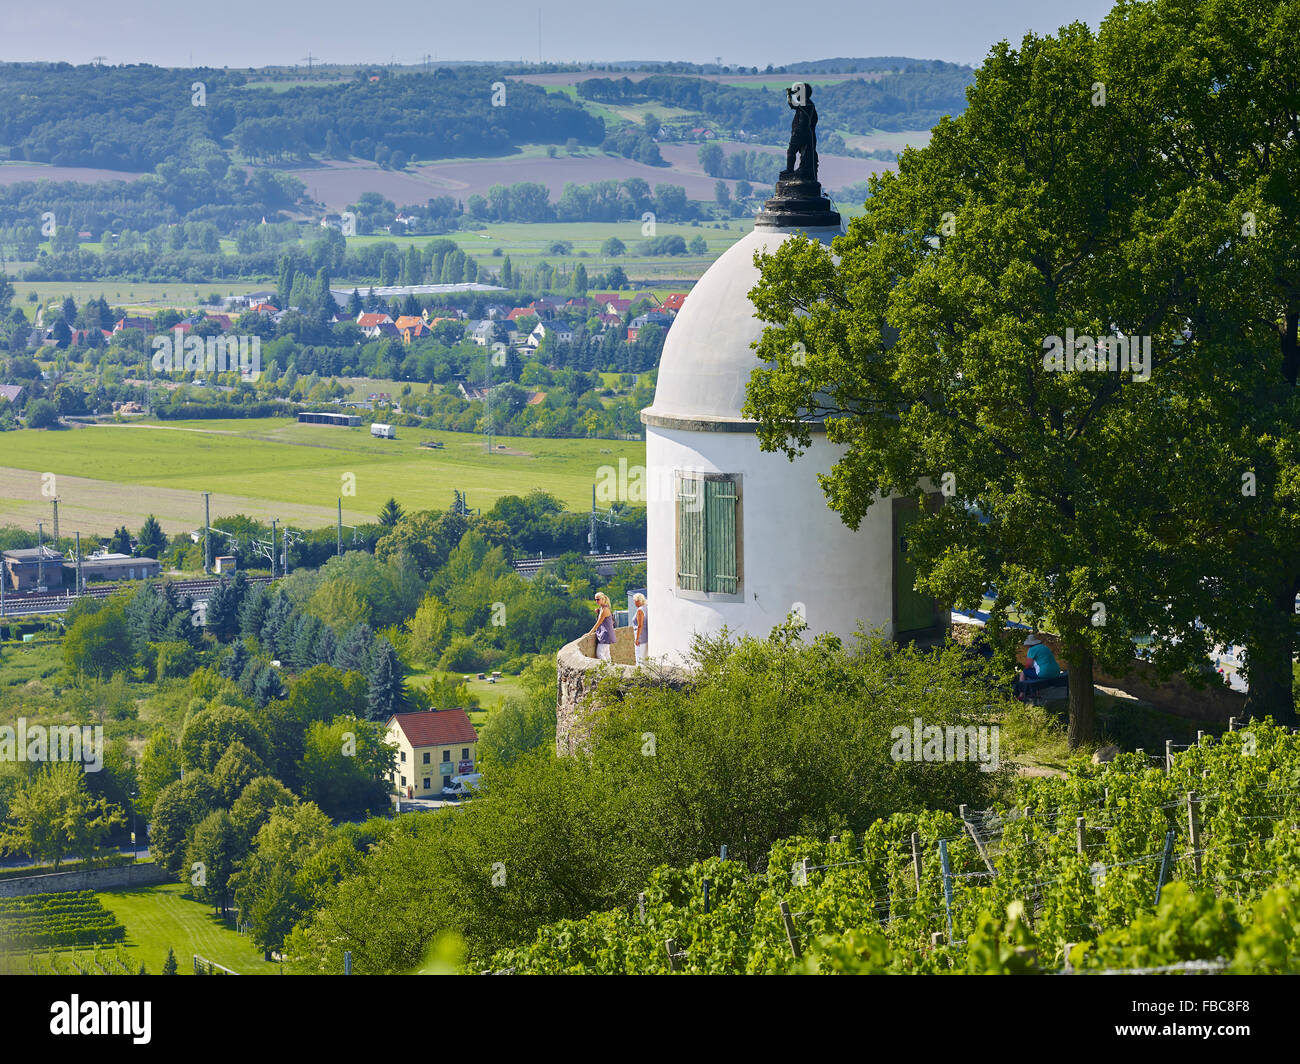 Tower on the Jacob Stein, Radebeul, Saxony, Germany - Stock Image